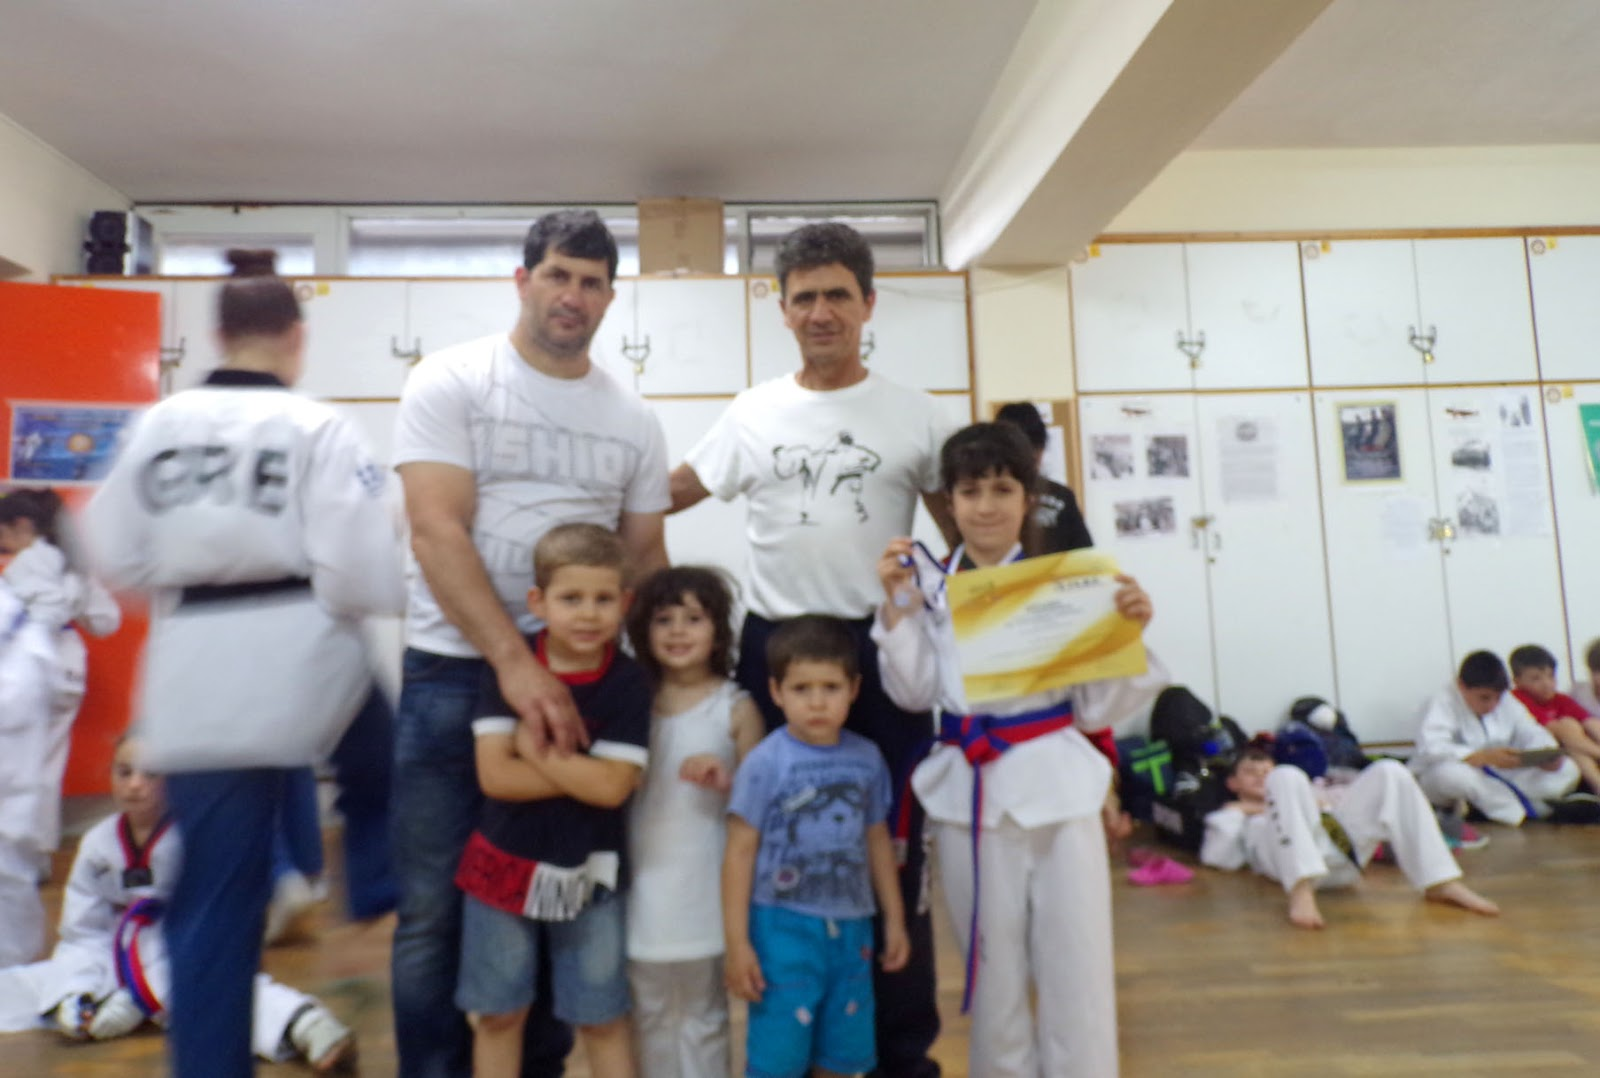 1st Kids Festival Tae Kwon Do της Ε.ΤΑ.Β.Ε.